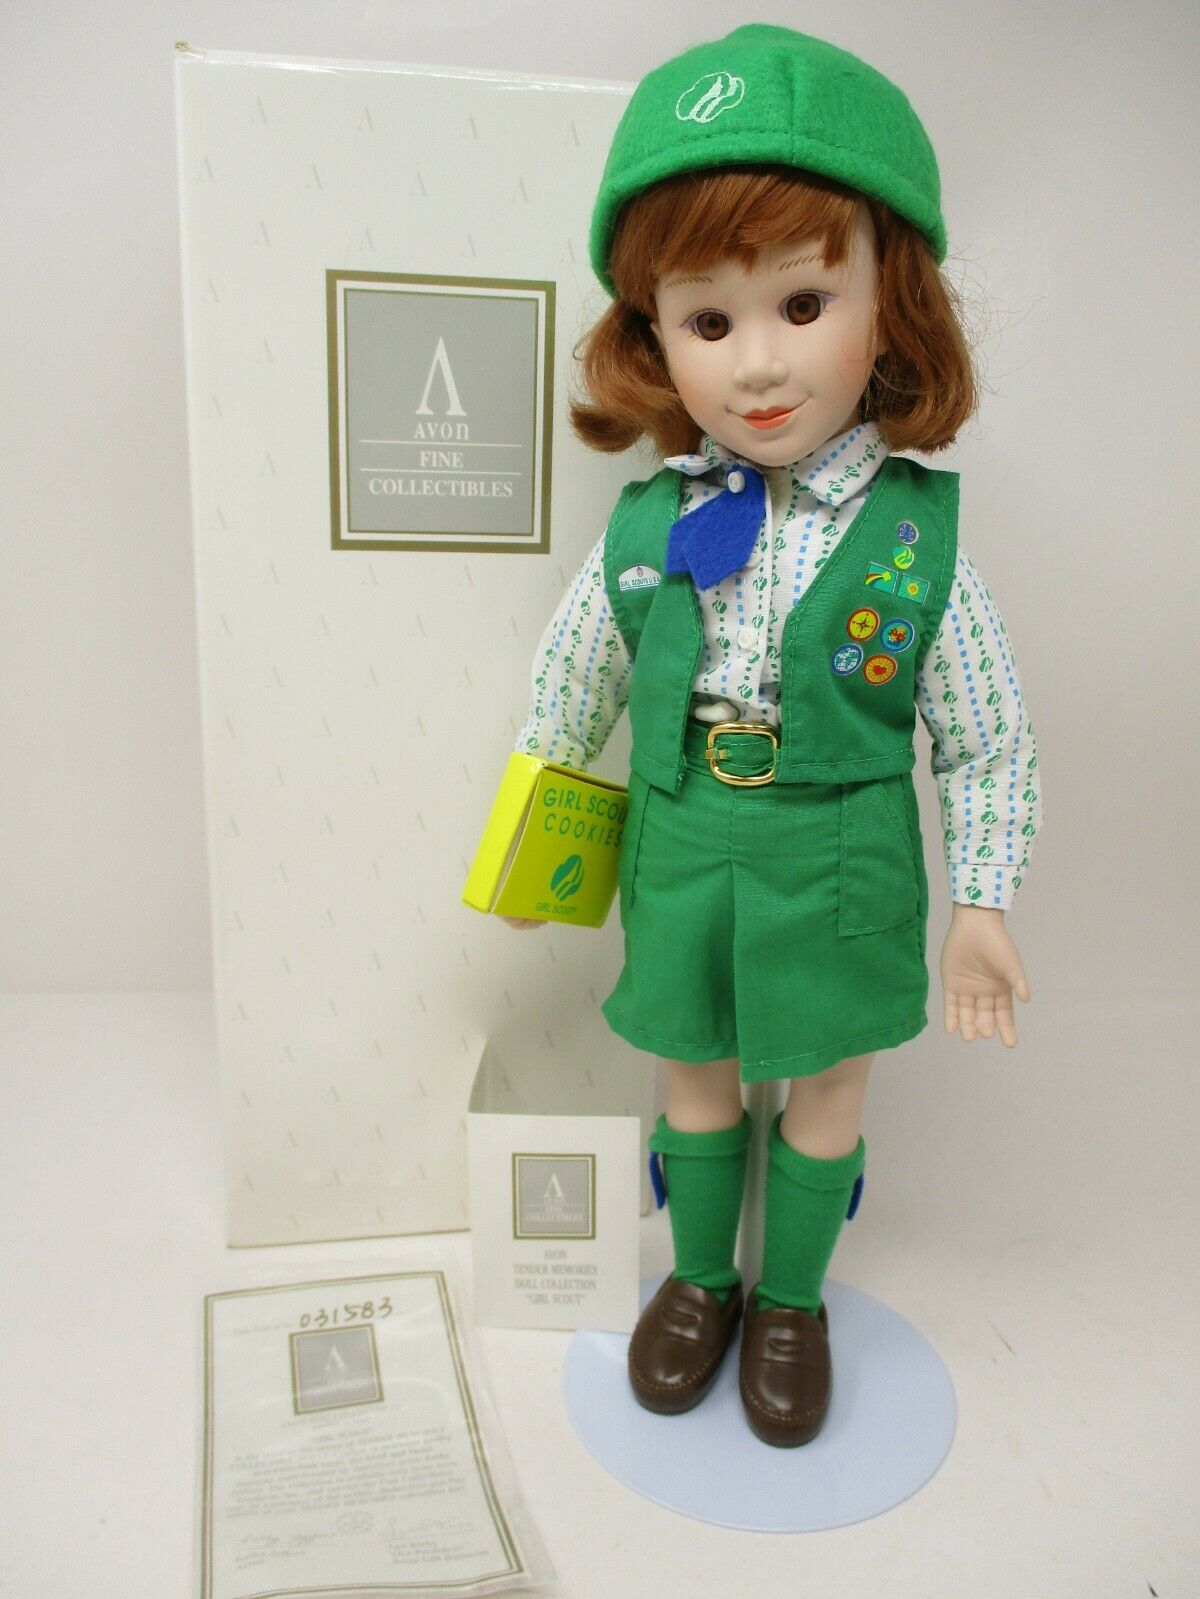 """Avon Tender Memories Girl Scout 14"""" Porcelain Doll New In Box With COA"""